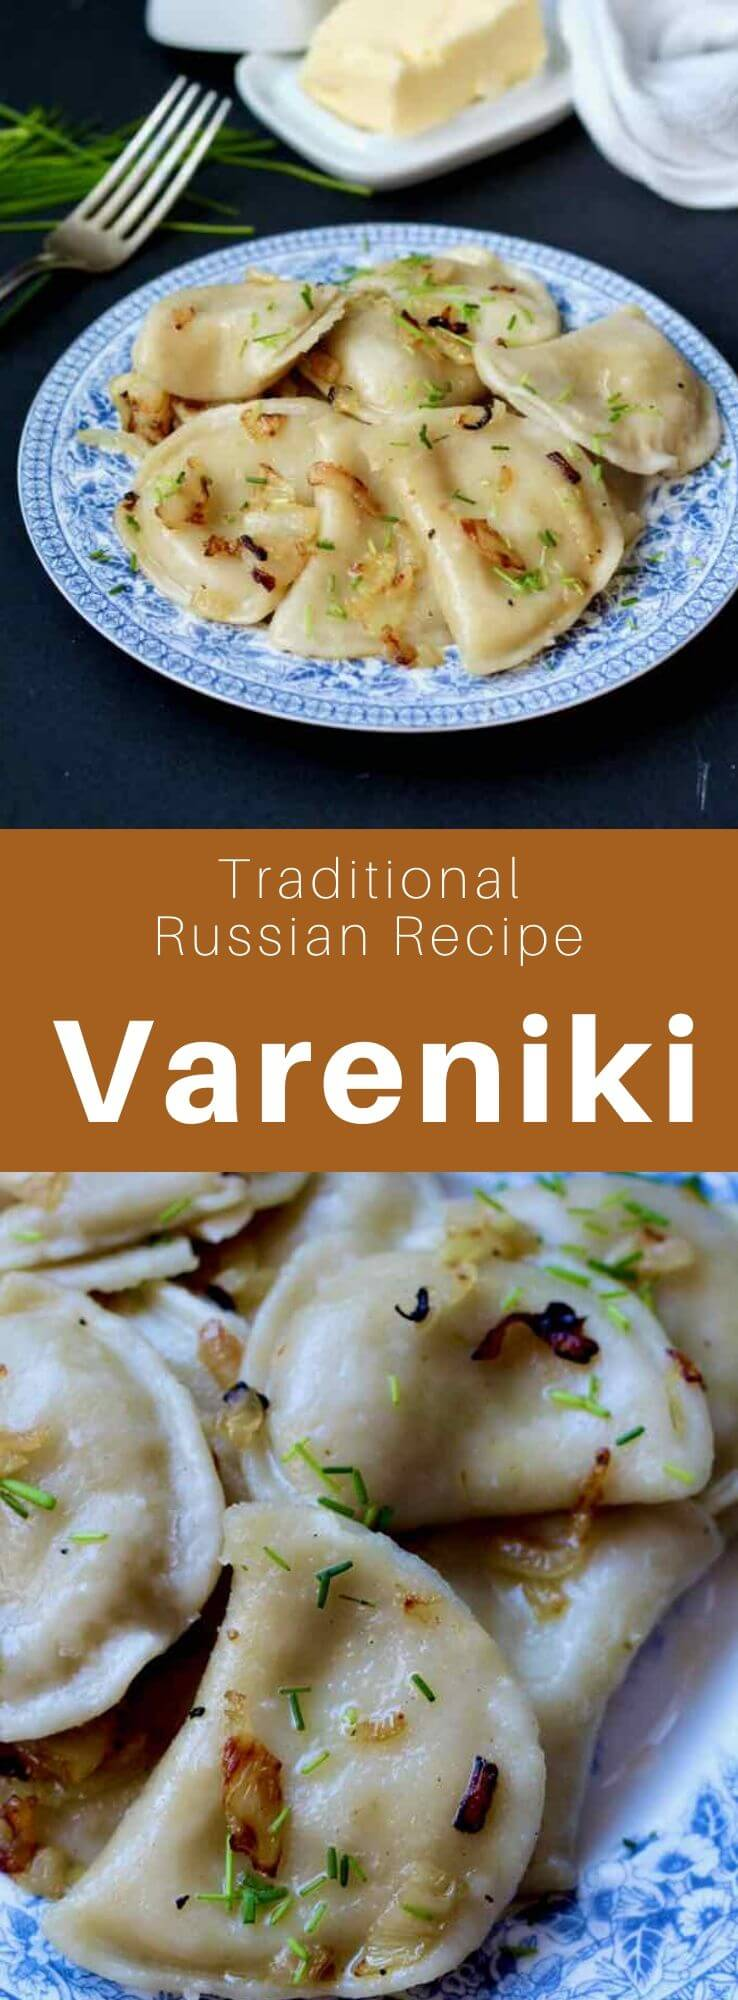 Vareniki (варе́ники) are dumplings similar to Polish pierogi, that are traditional in Ukraine and Russia. There are several kinds of fillings, with mashed potatoes being the most classic. #Russia #Russian #RussianRecipe #RussianFood #Ukraine #Ukrainian #UkrainianRecipe #UkrainianFood #WorldCuisine #196flavors